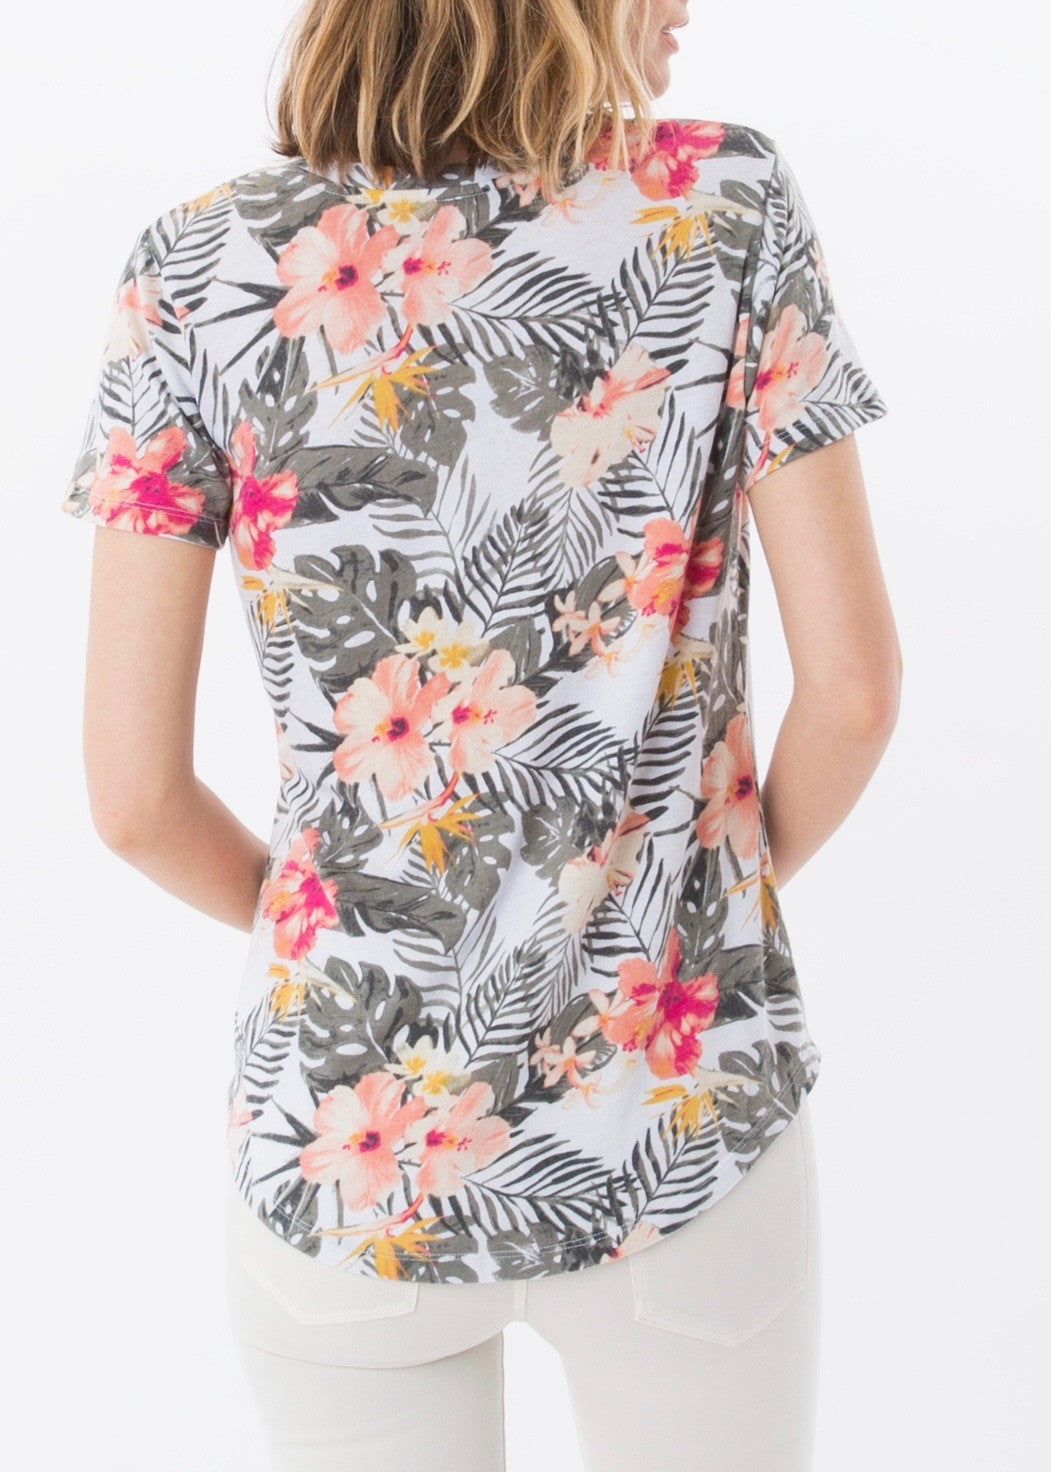 The Tropical Pocket Tee